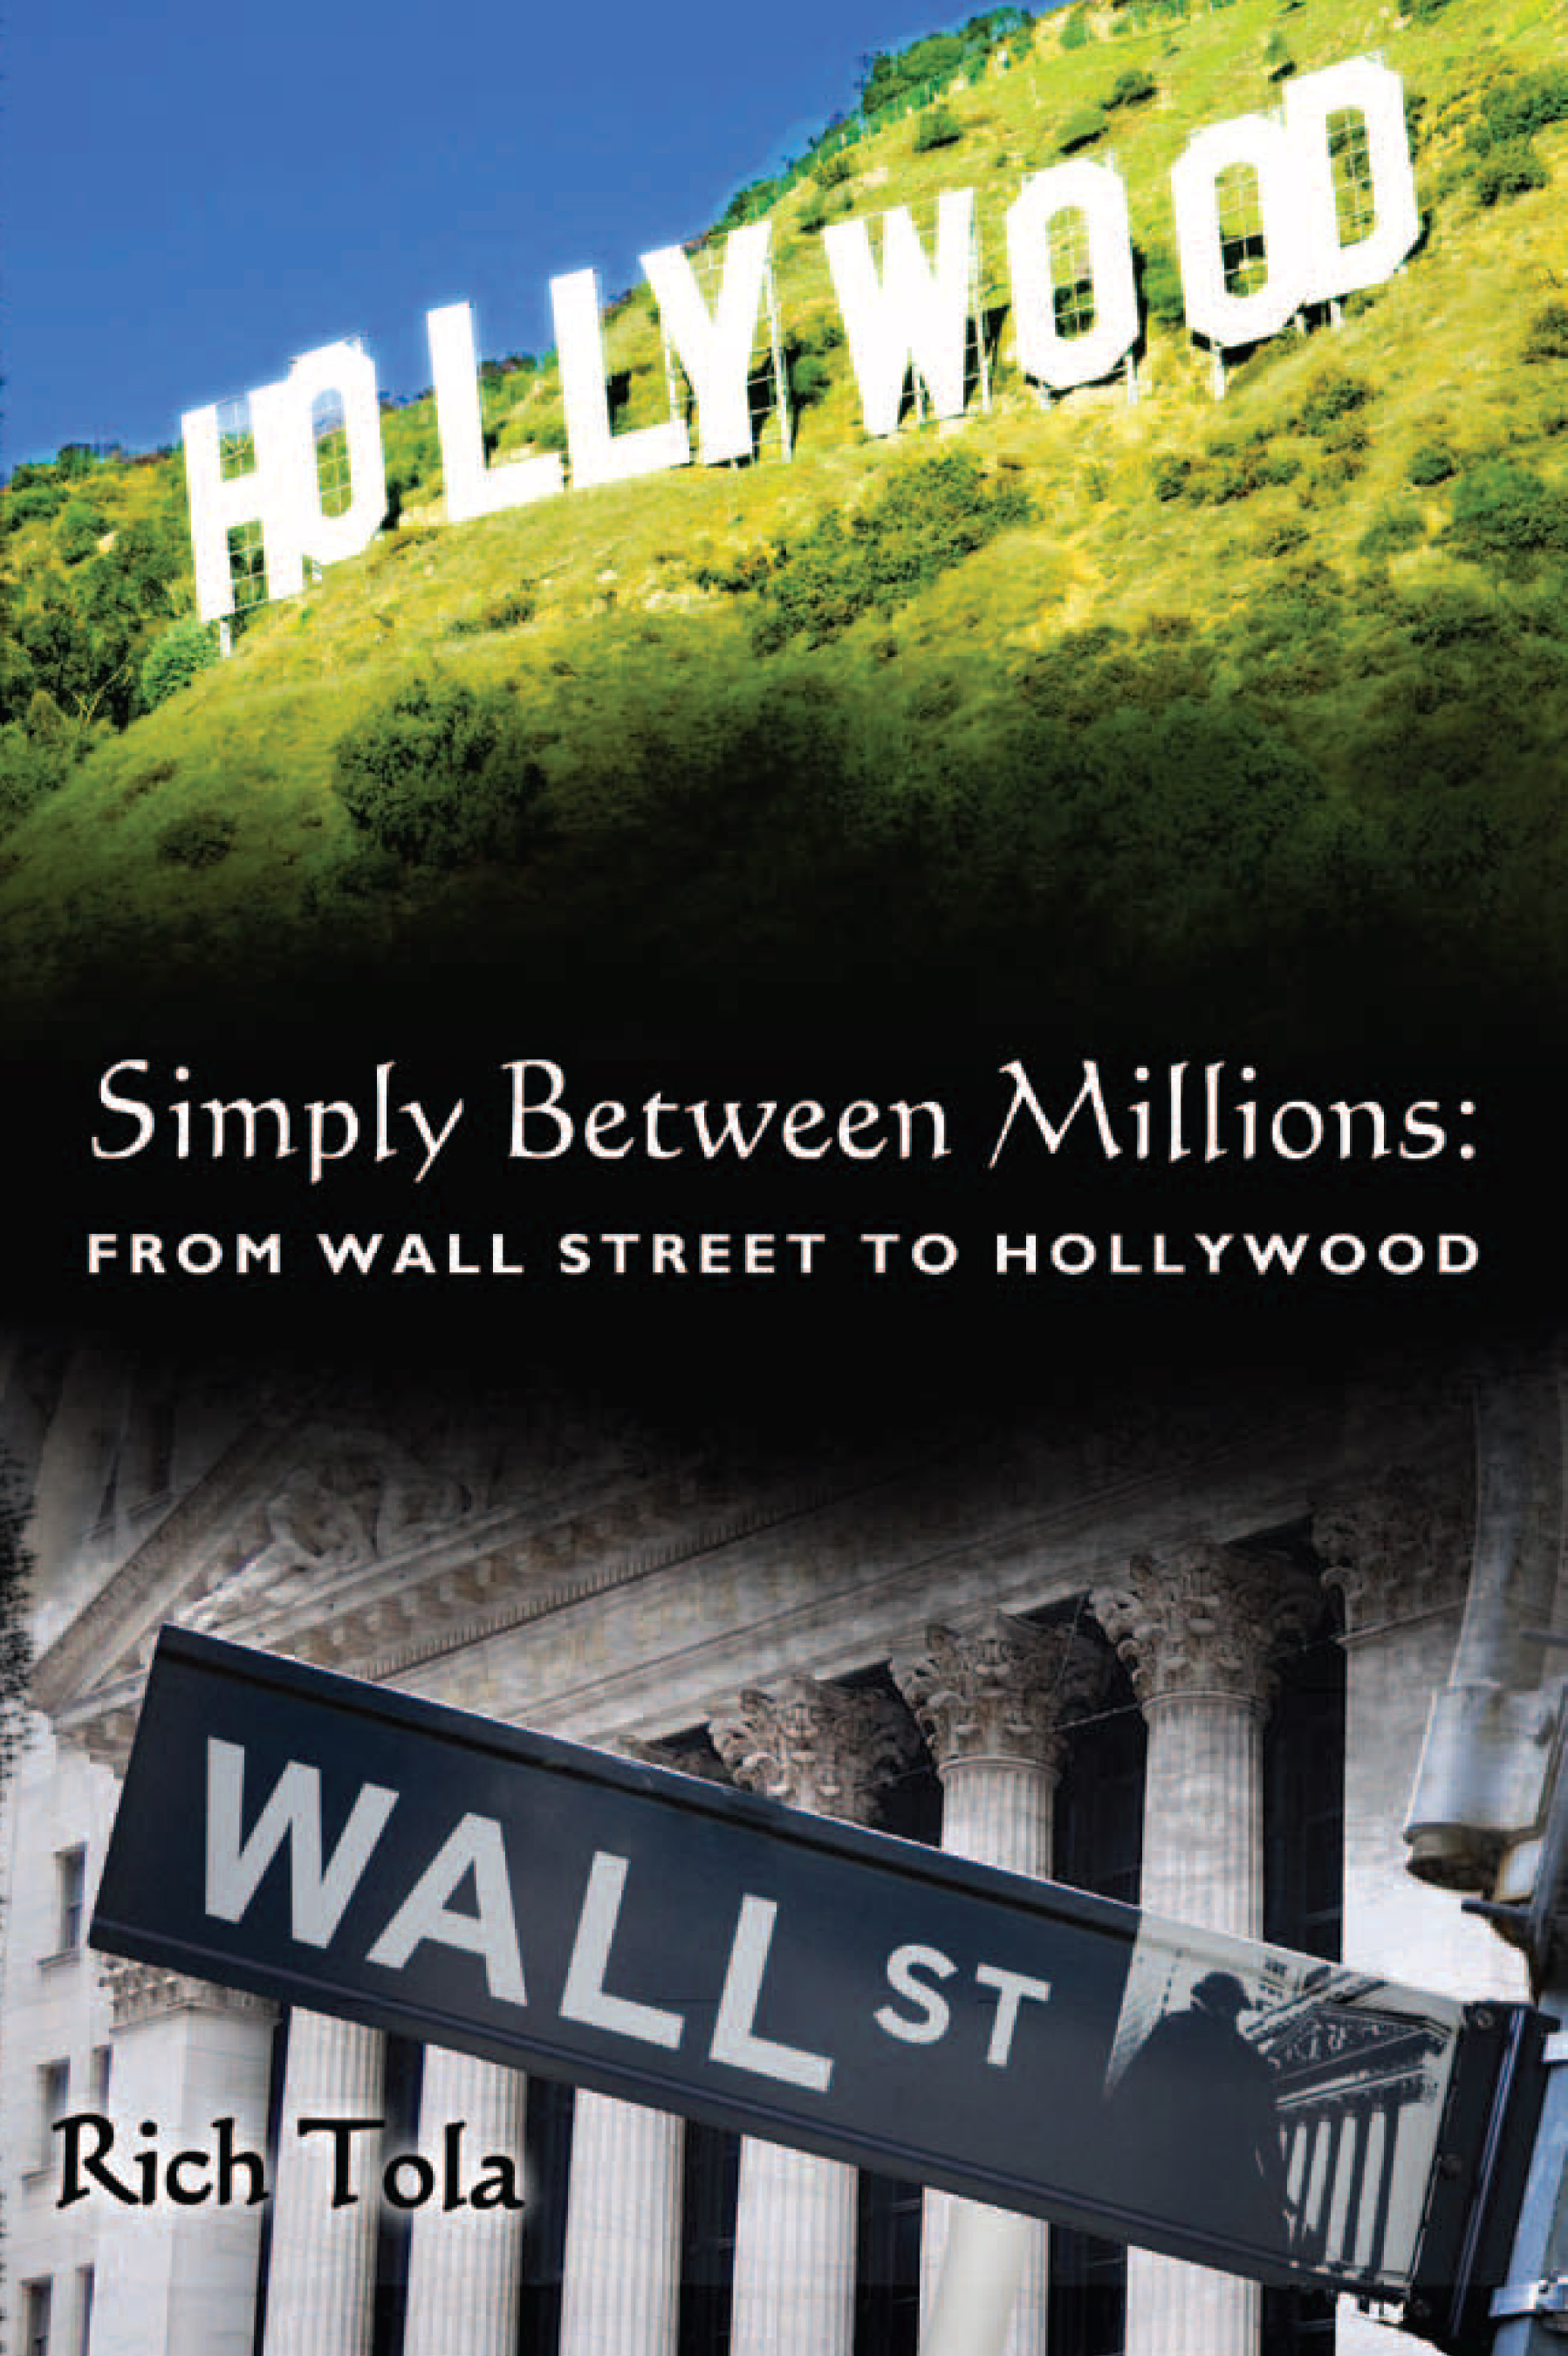 SimplyBetweenMillionsPostcardCover copy